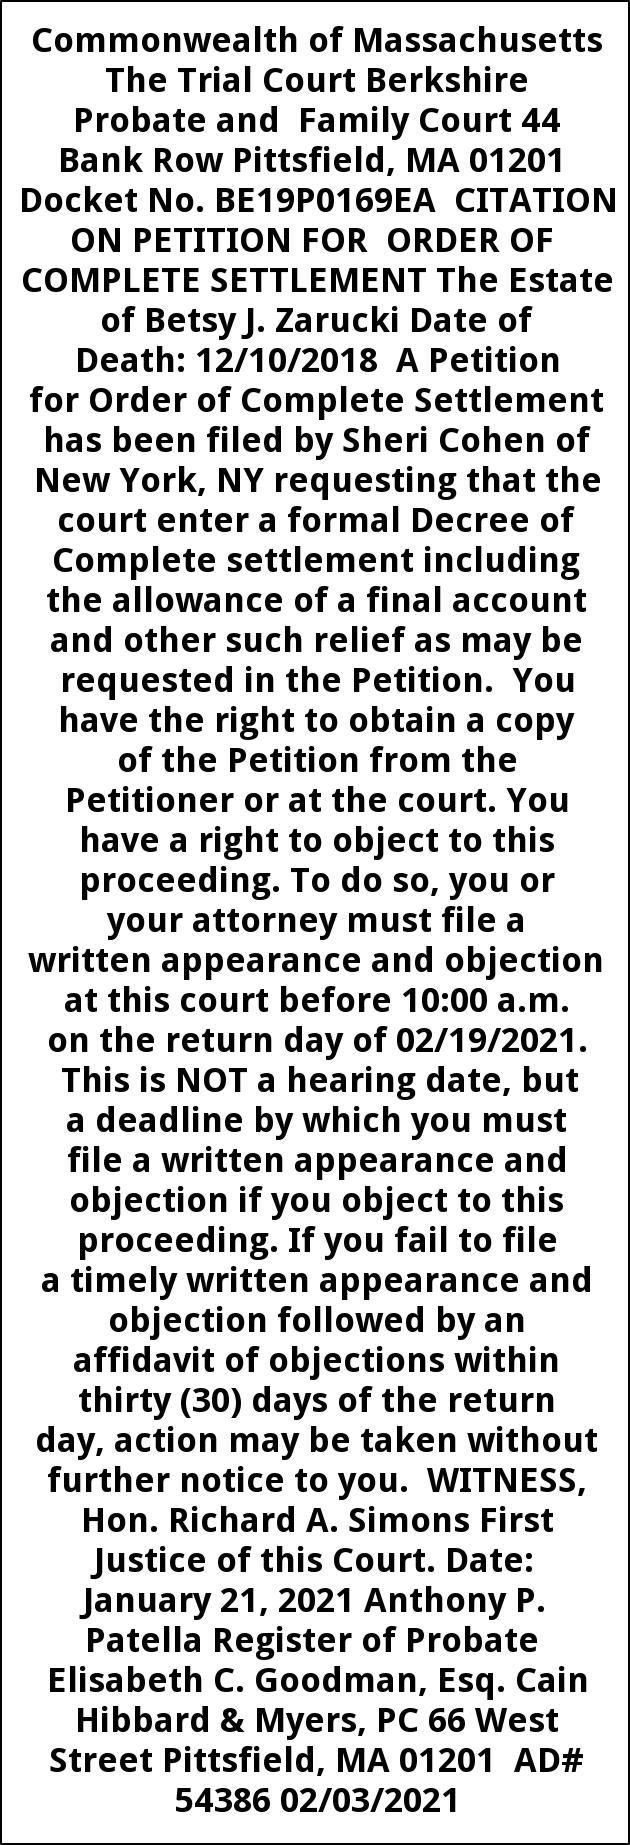 Citation On Petition For Order Of Complete Settlement